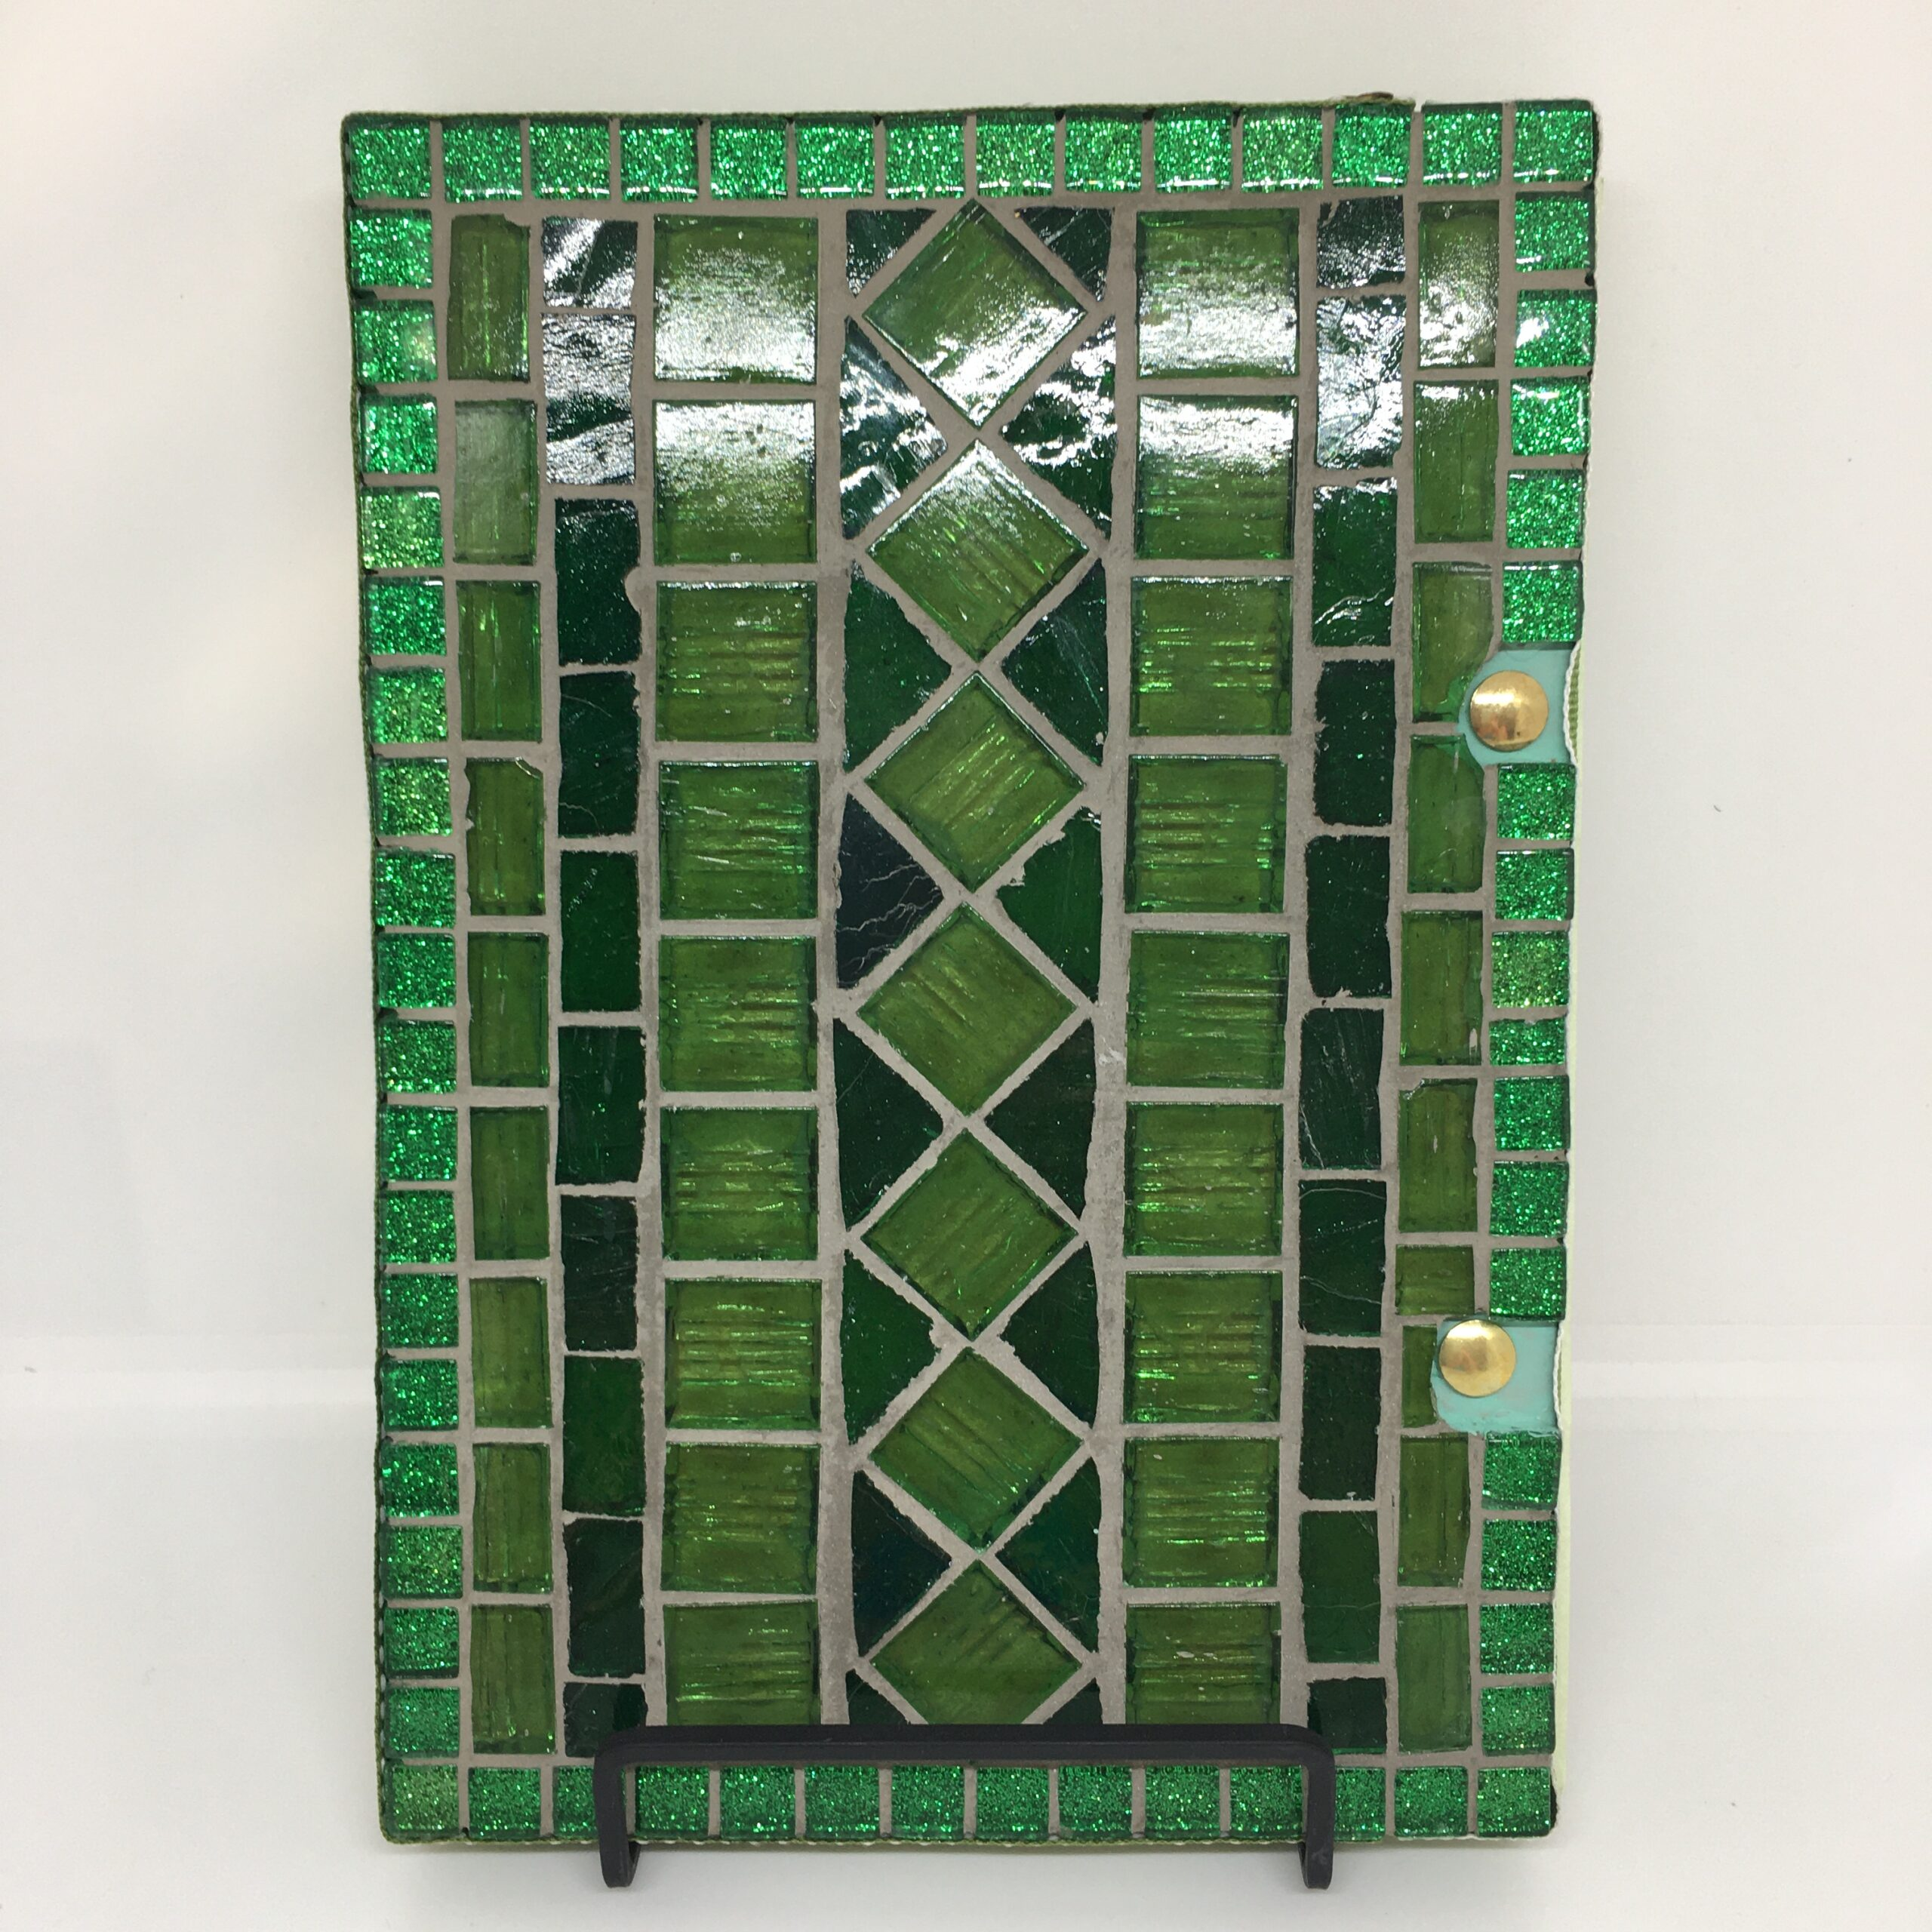 Back cover of Daffodil Days art journal featuring mosaic in green glass.